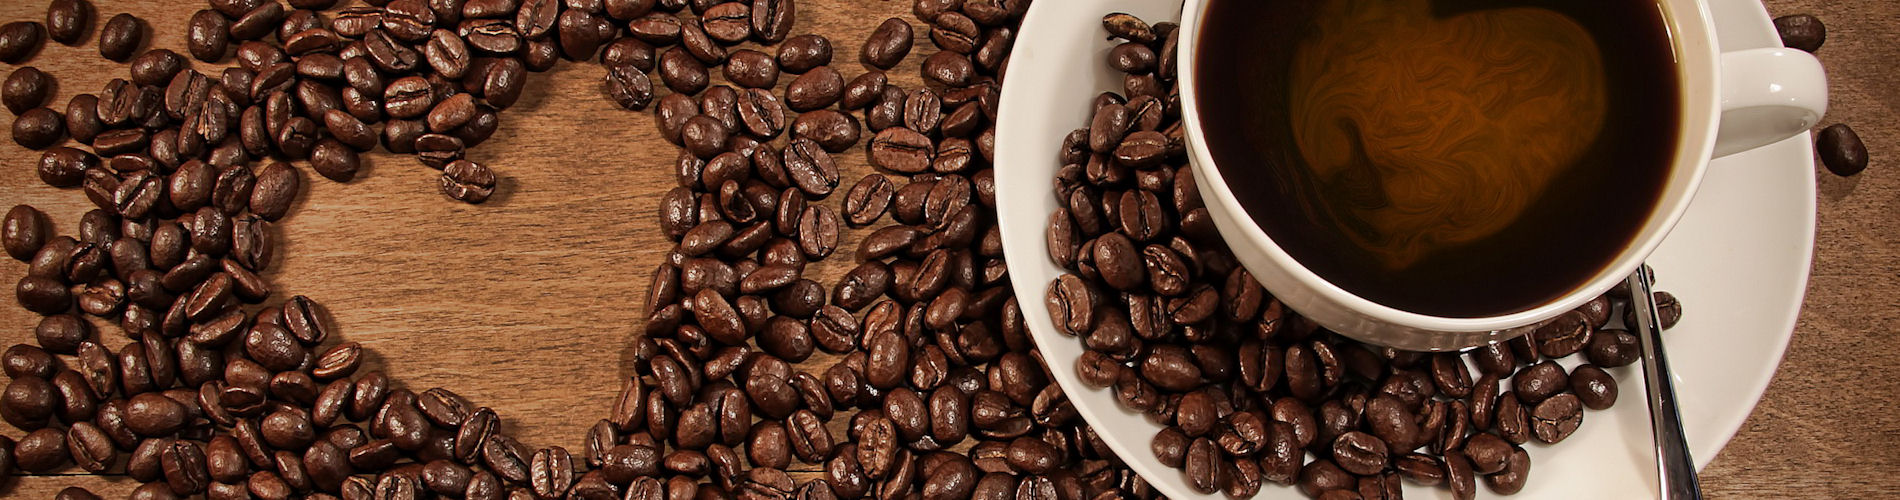 From our roaster to your coffee cup. Enjoy!